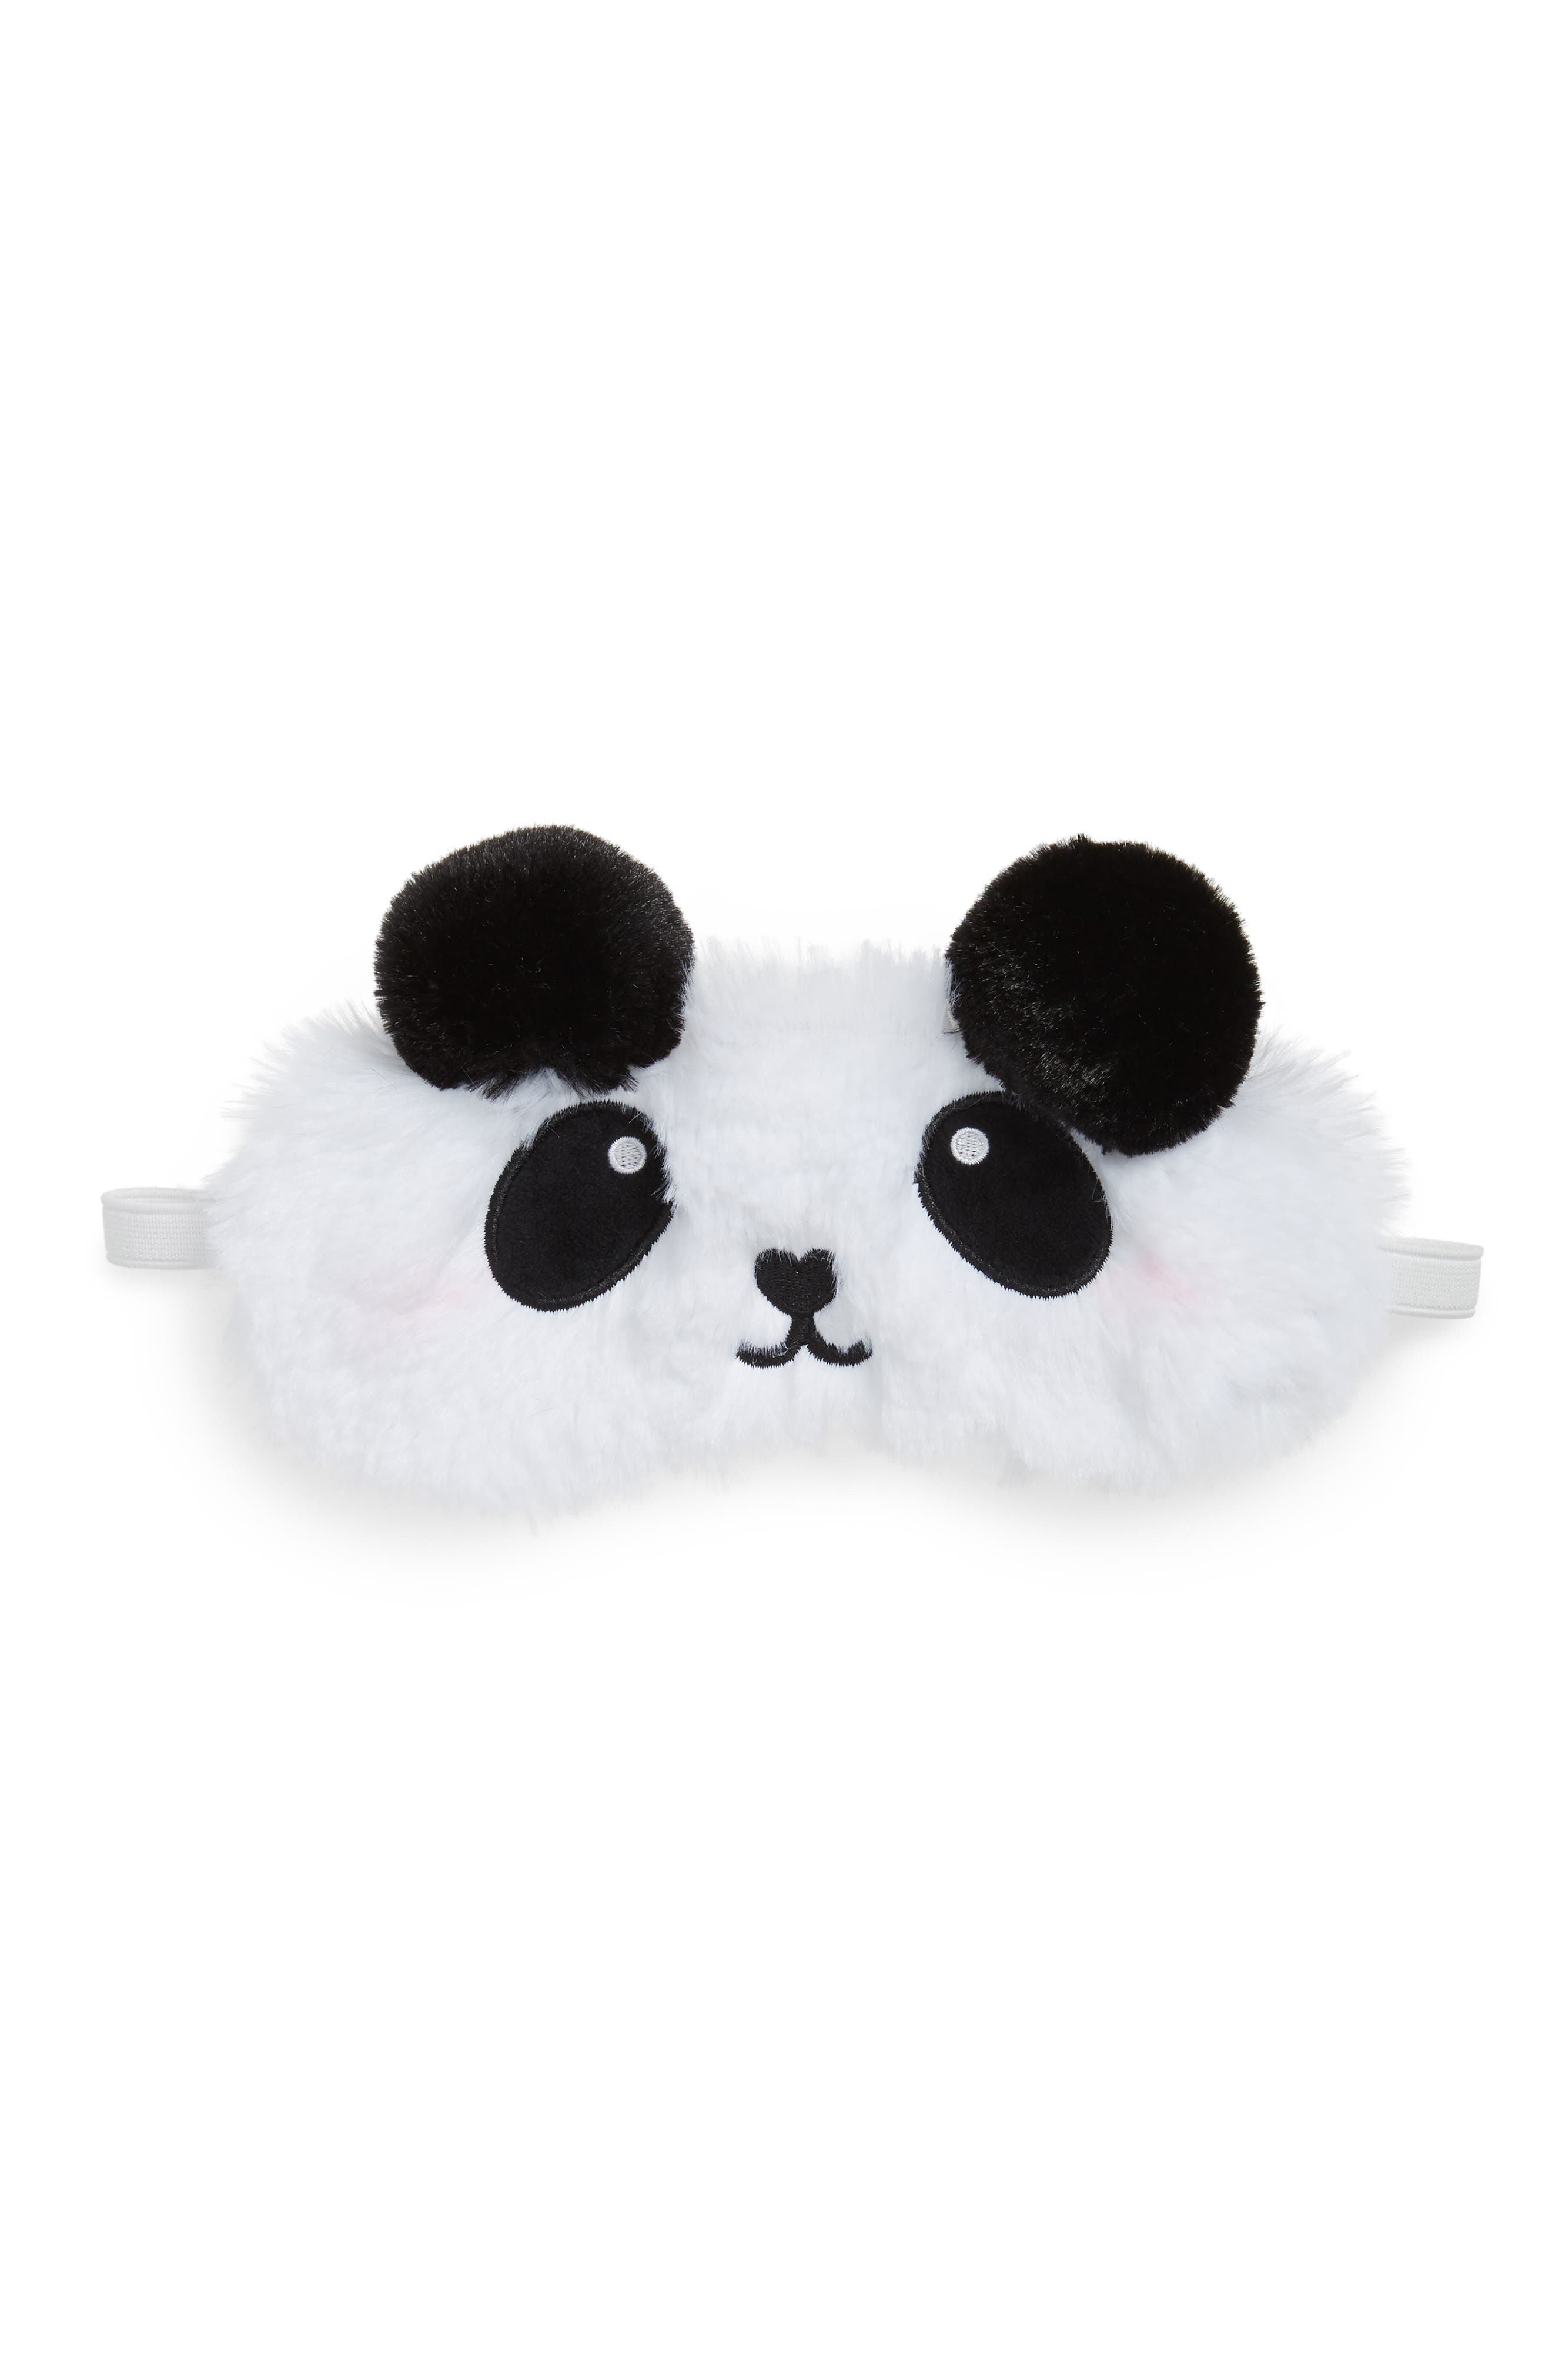 Panda Spa Eye Mask,                         Main,                         color, 100